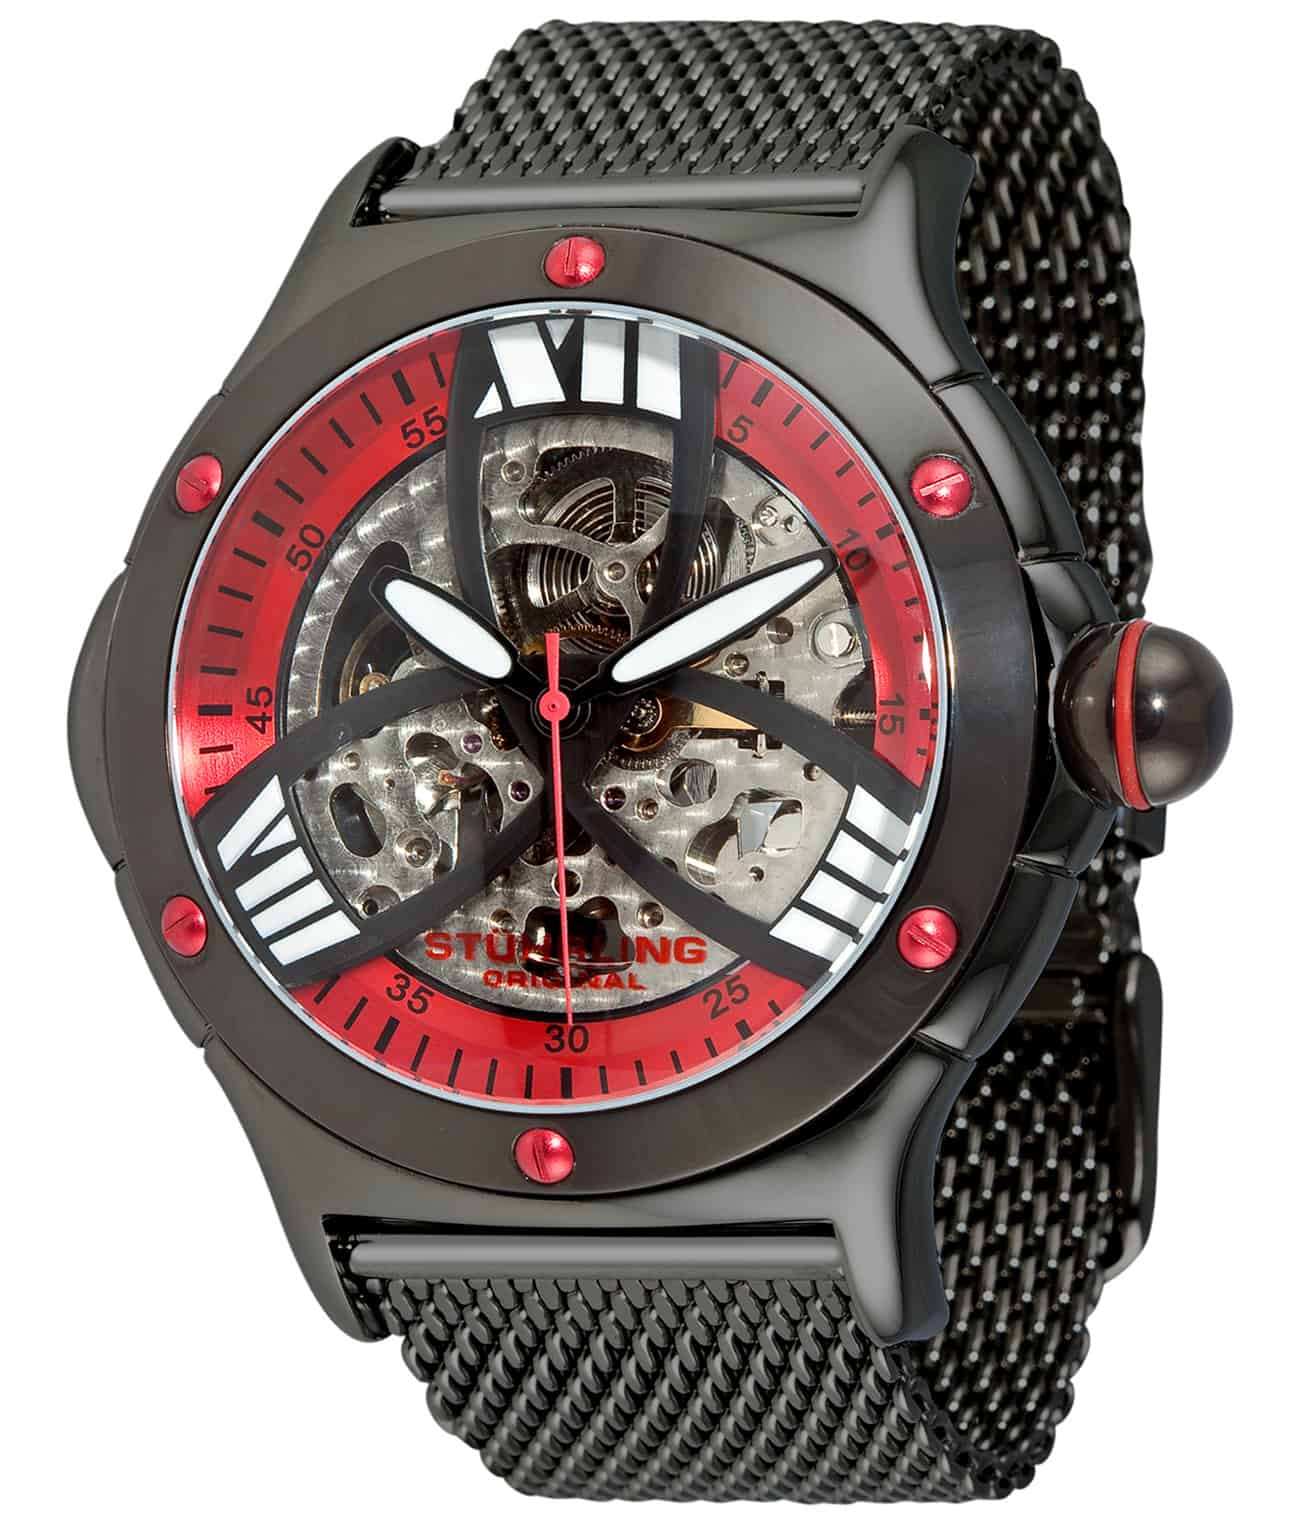 Red/Black PVD/Black PVD